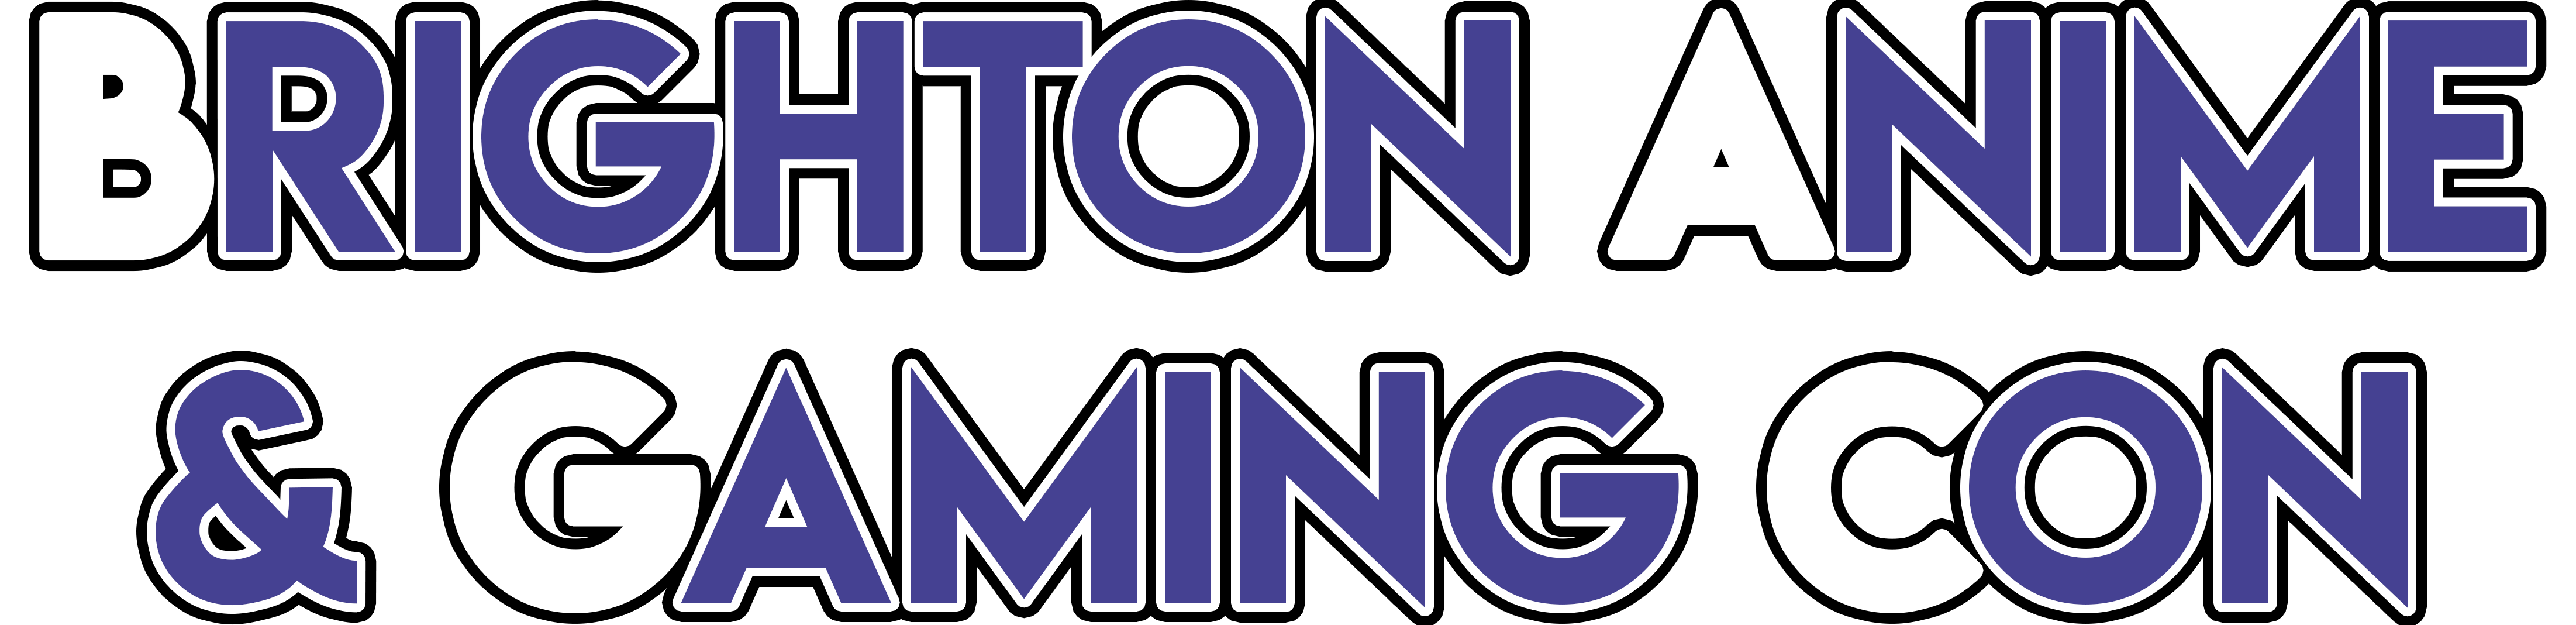 Brighton Anime & Gaming Con